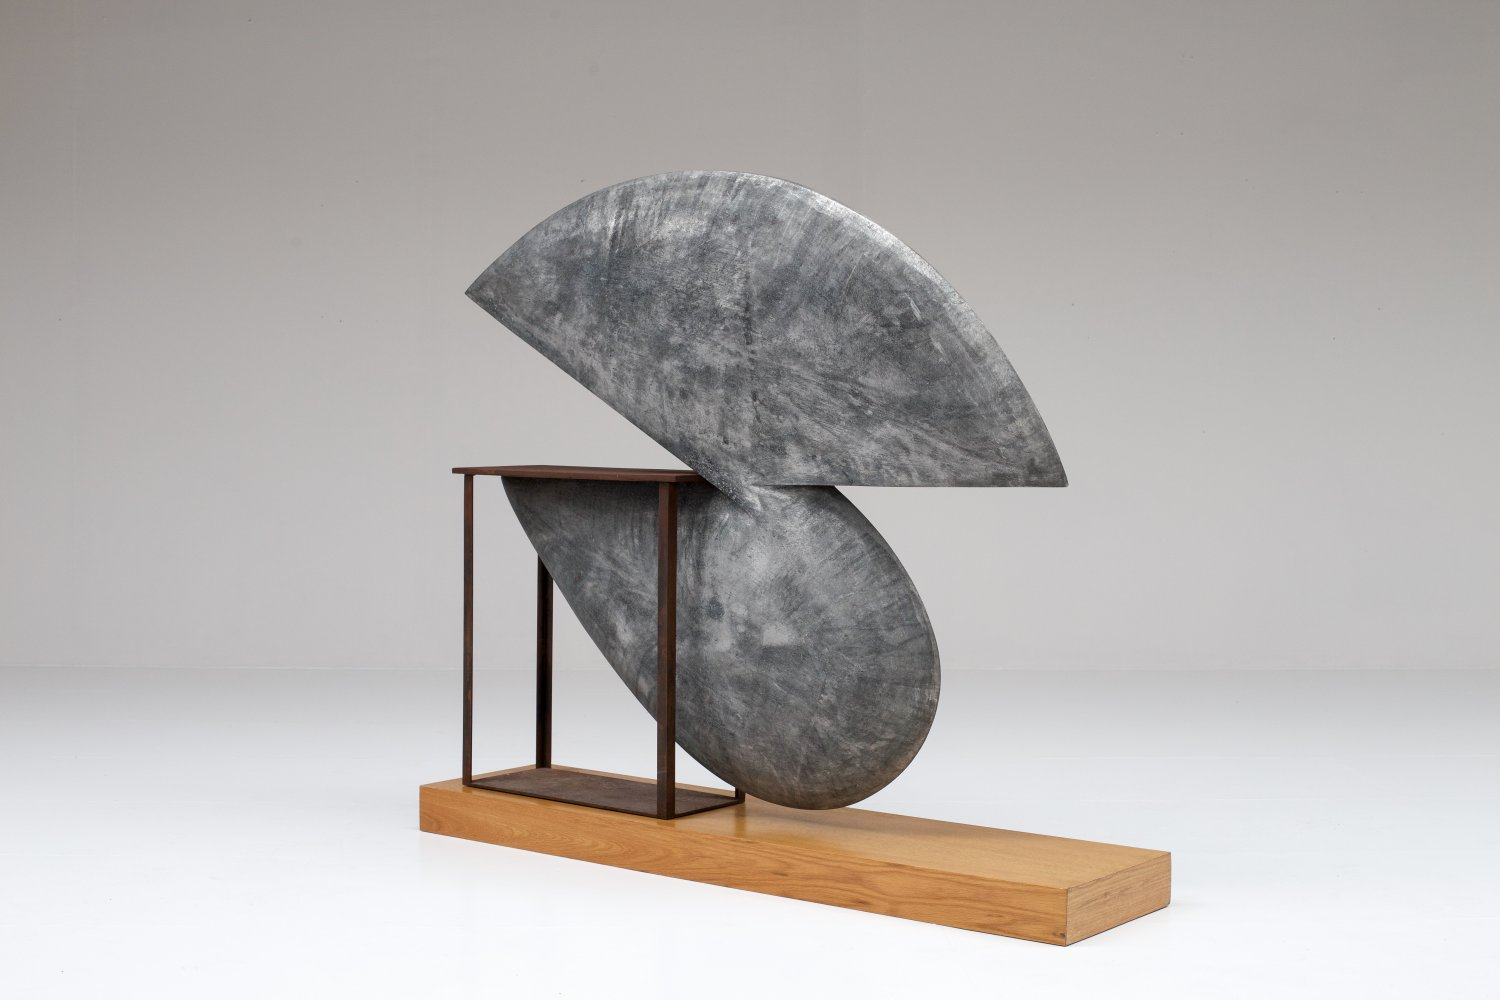 Sculpture by Win Knowlton